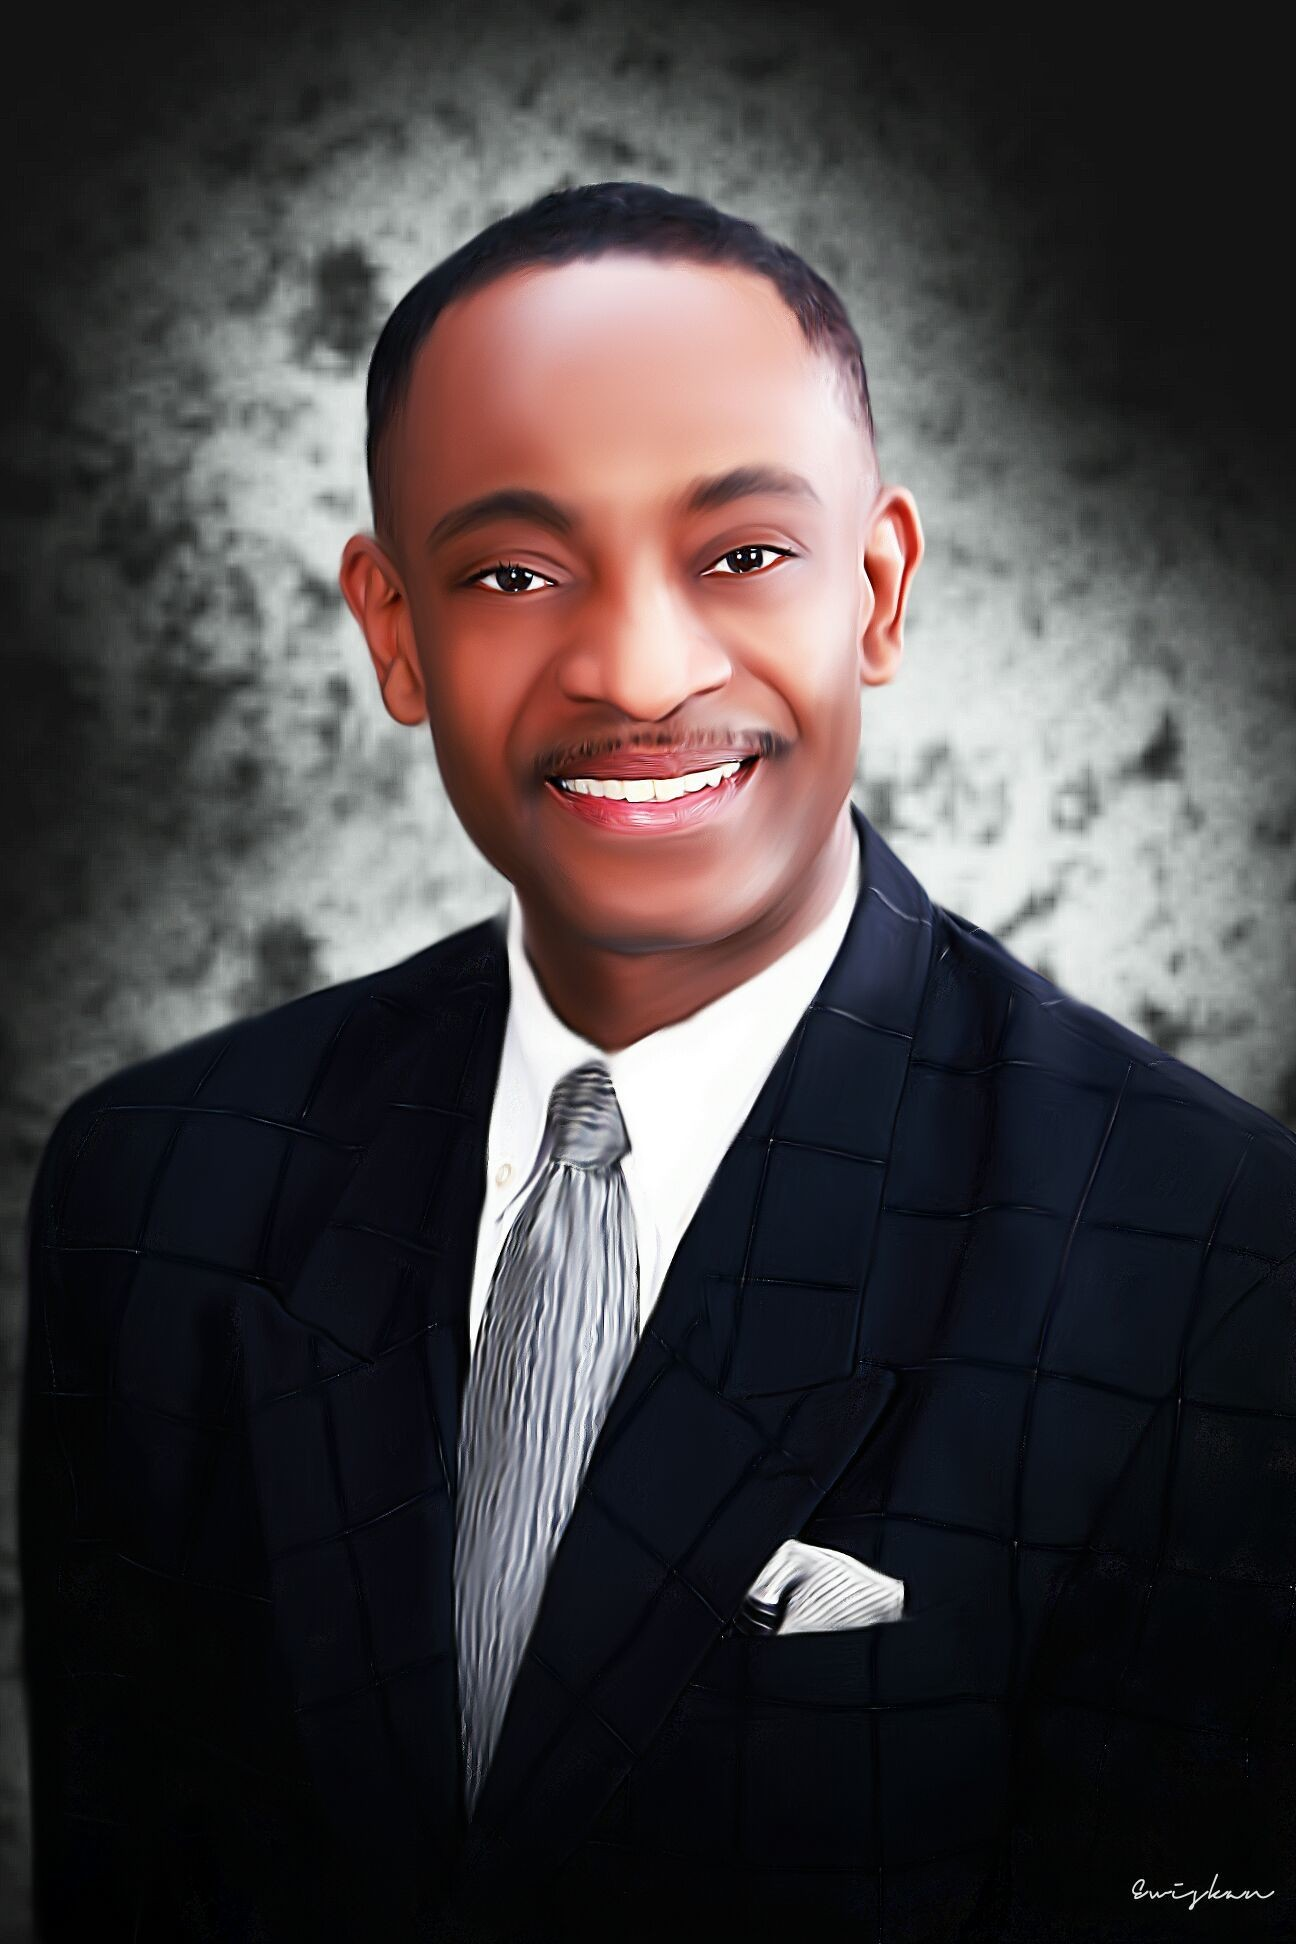 Meet my Special Guest an awesome faithful man of God who is an Author of Children Books. Join us next Wednesday May 15 from 7:00 pm until 8:30 pm on Blogtalkradio.com/AJS-Ministry and call in at 347-327-9752